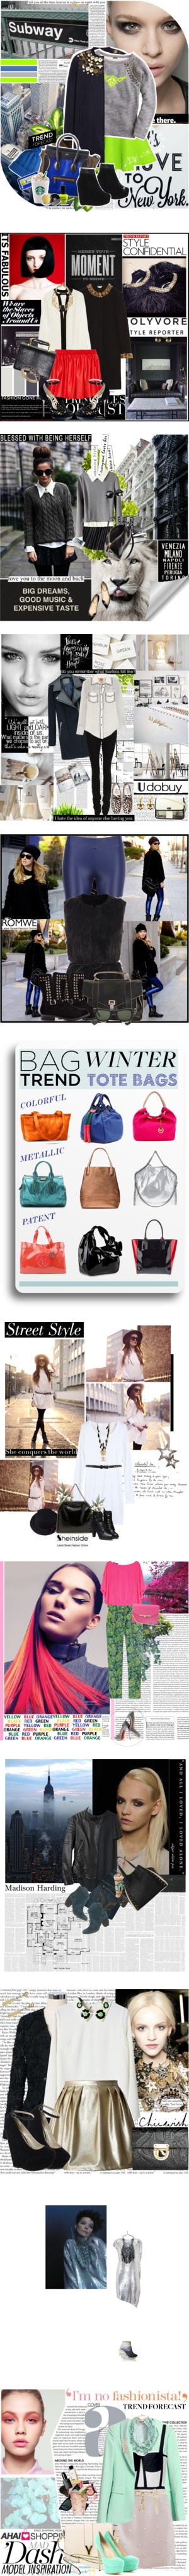 """""""Top Sets for Jan 13th, 2013"""" by polyvore ❤ liked on Polyvore"""